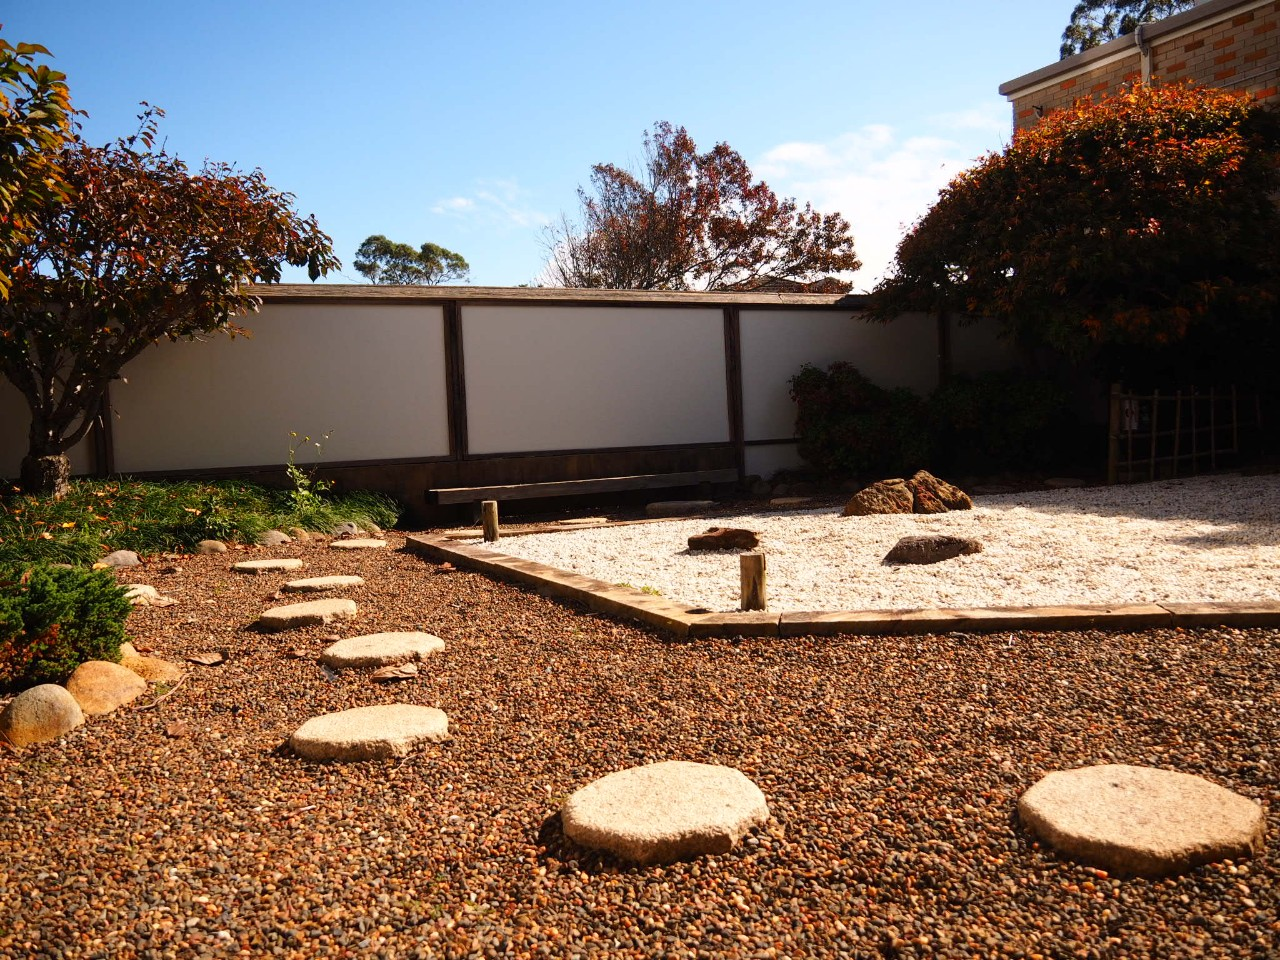 Japanese garden with stepping stones